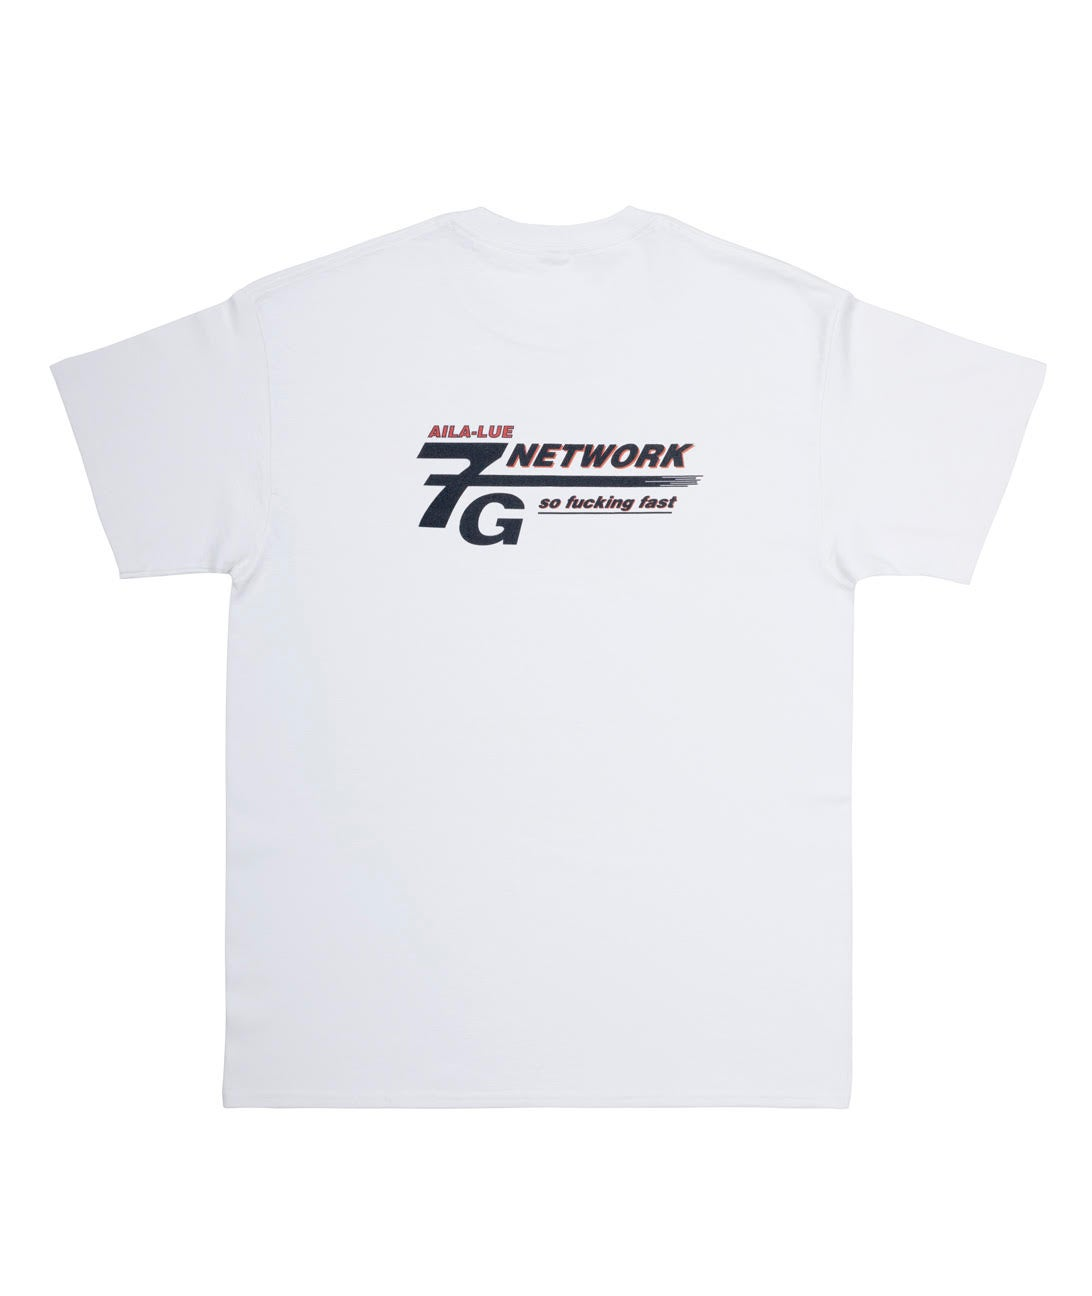 Image of 7G T-SHIRT